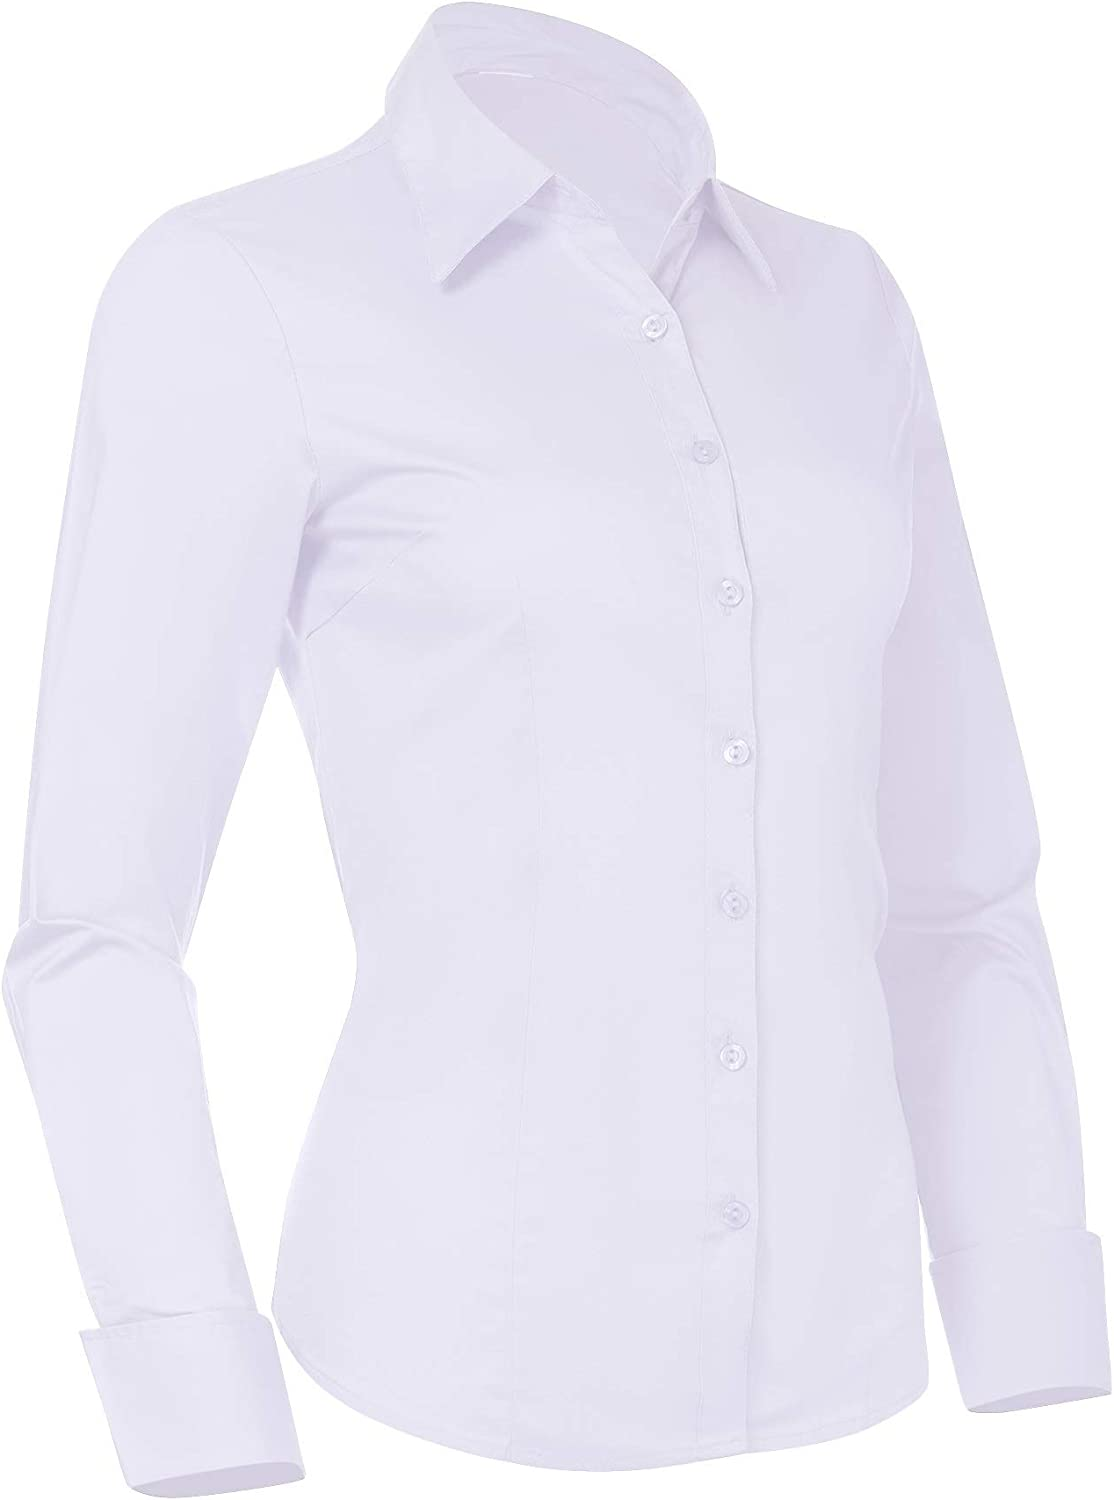 Pier 17 Button Down Shirts for Women, Fitted Long Sleeve Tailored Work Office Blouse